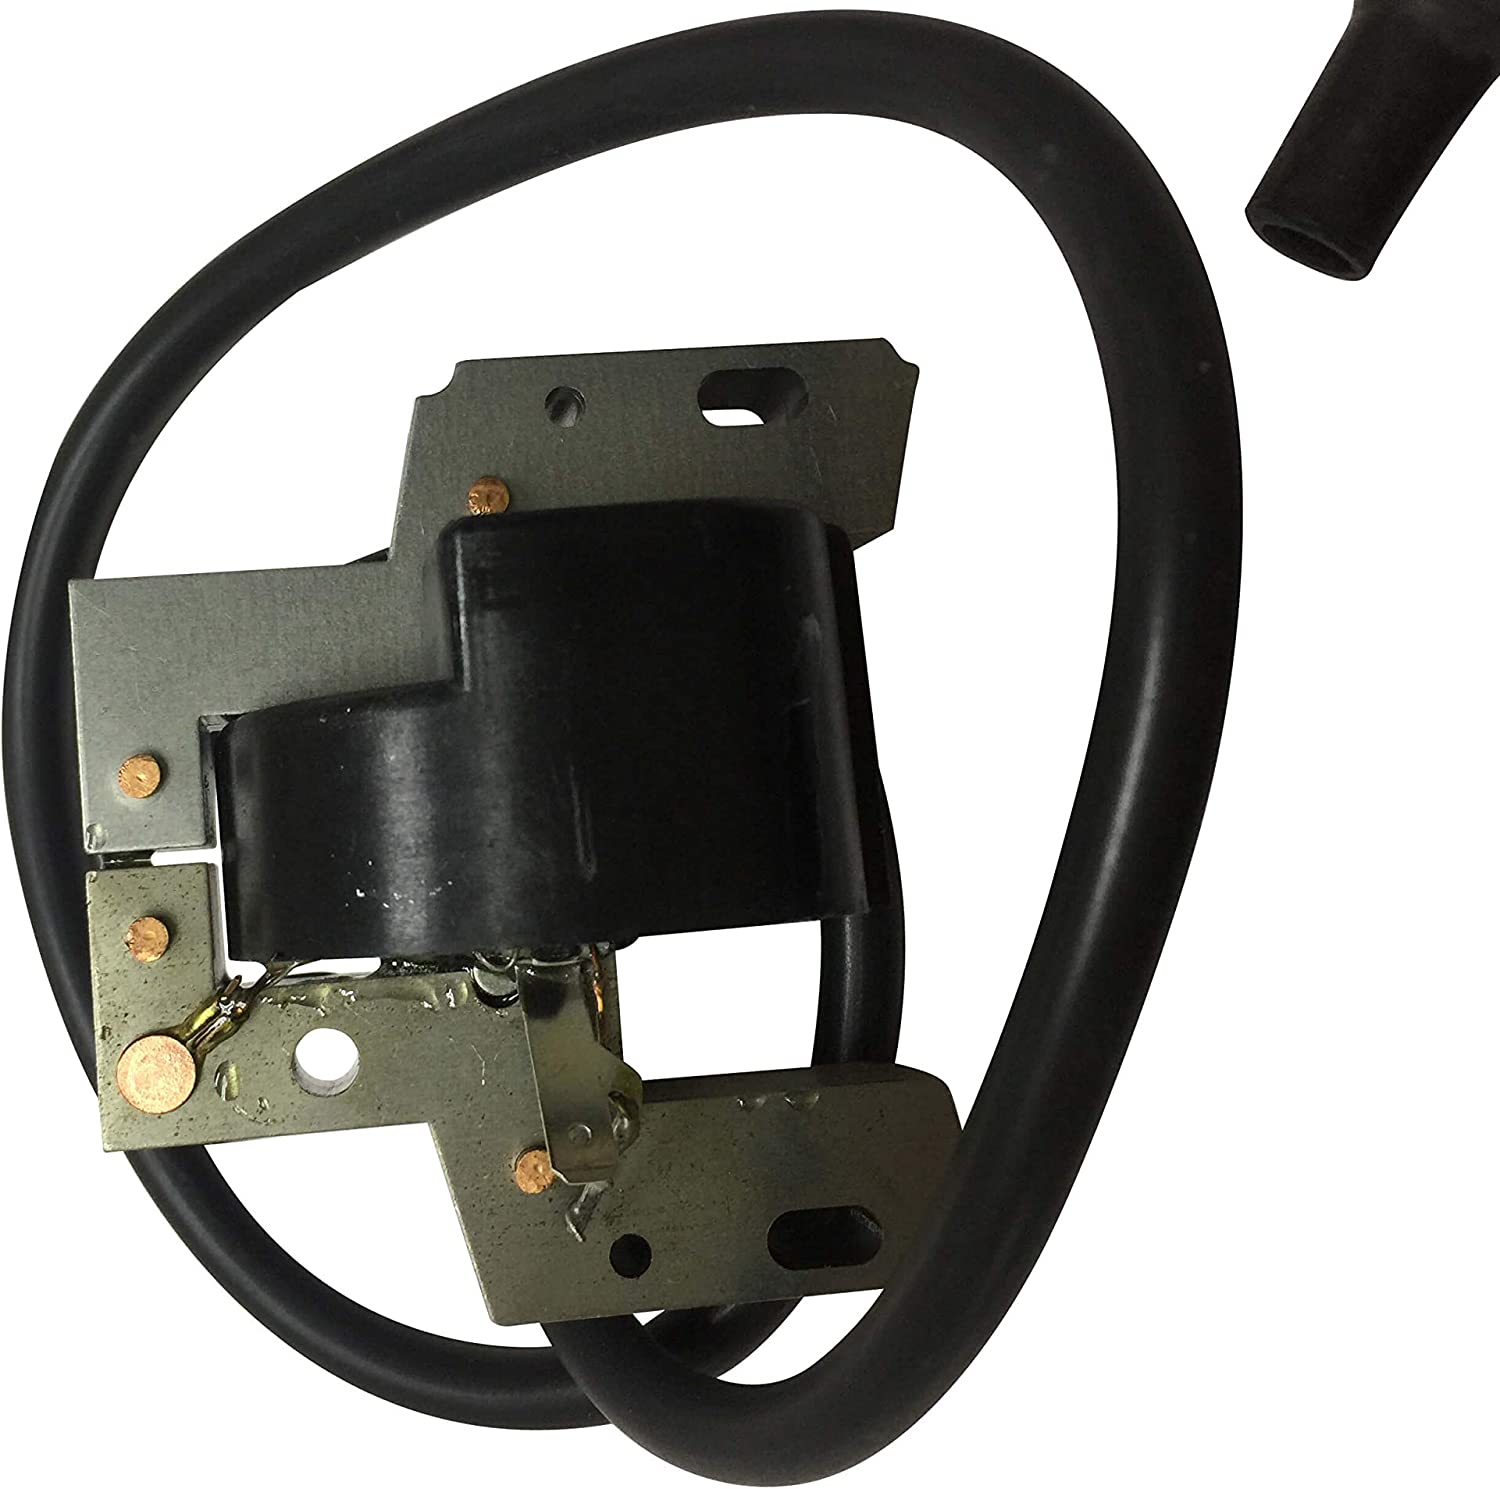 ENGINERUN 492341 Ignition Coil Module Magneto Compatible with Briggs & Stratton 13 14 15HP OHV Vertical Engines Stens 440-433 Oregon 33-347